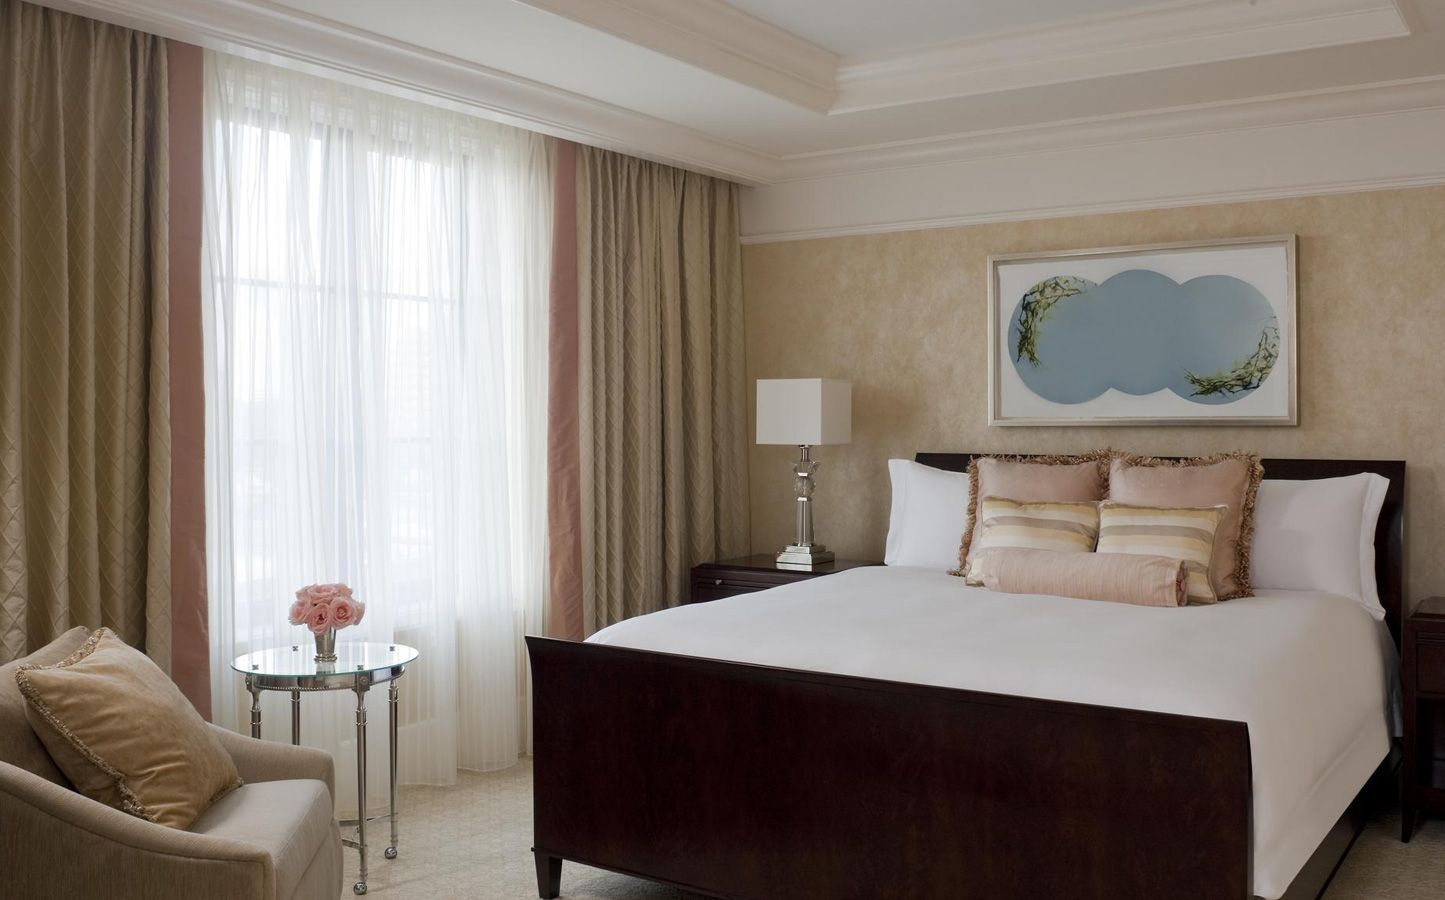 Metropolitan Bedroom Furniture Suite The St Regis Atlanta